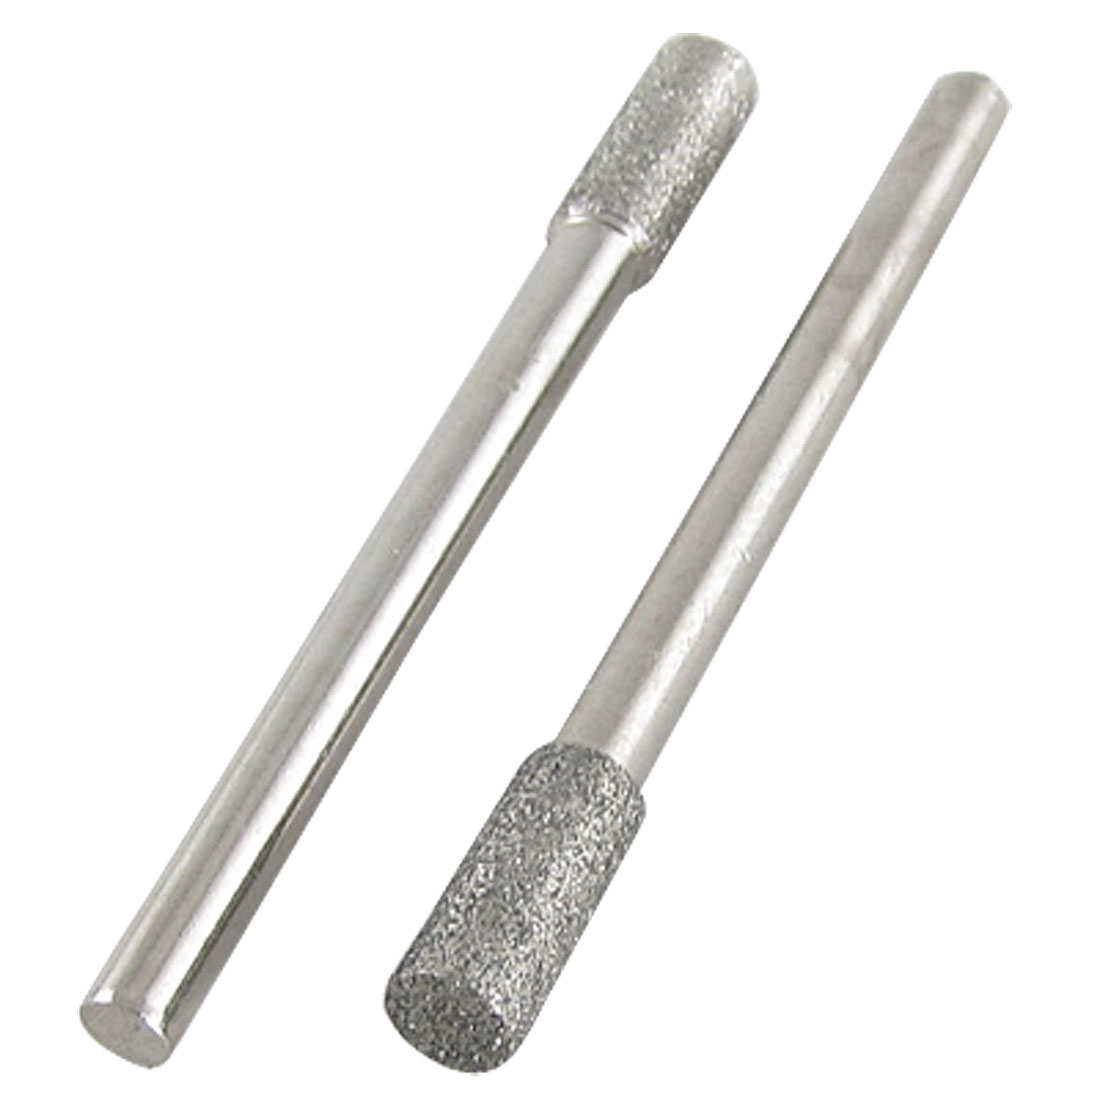 2 Pcs 4mm Cylinderical Ball Nose Diamond Mounted Point